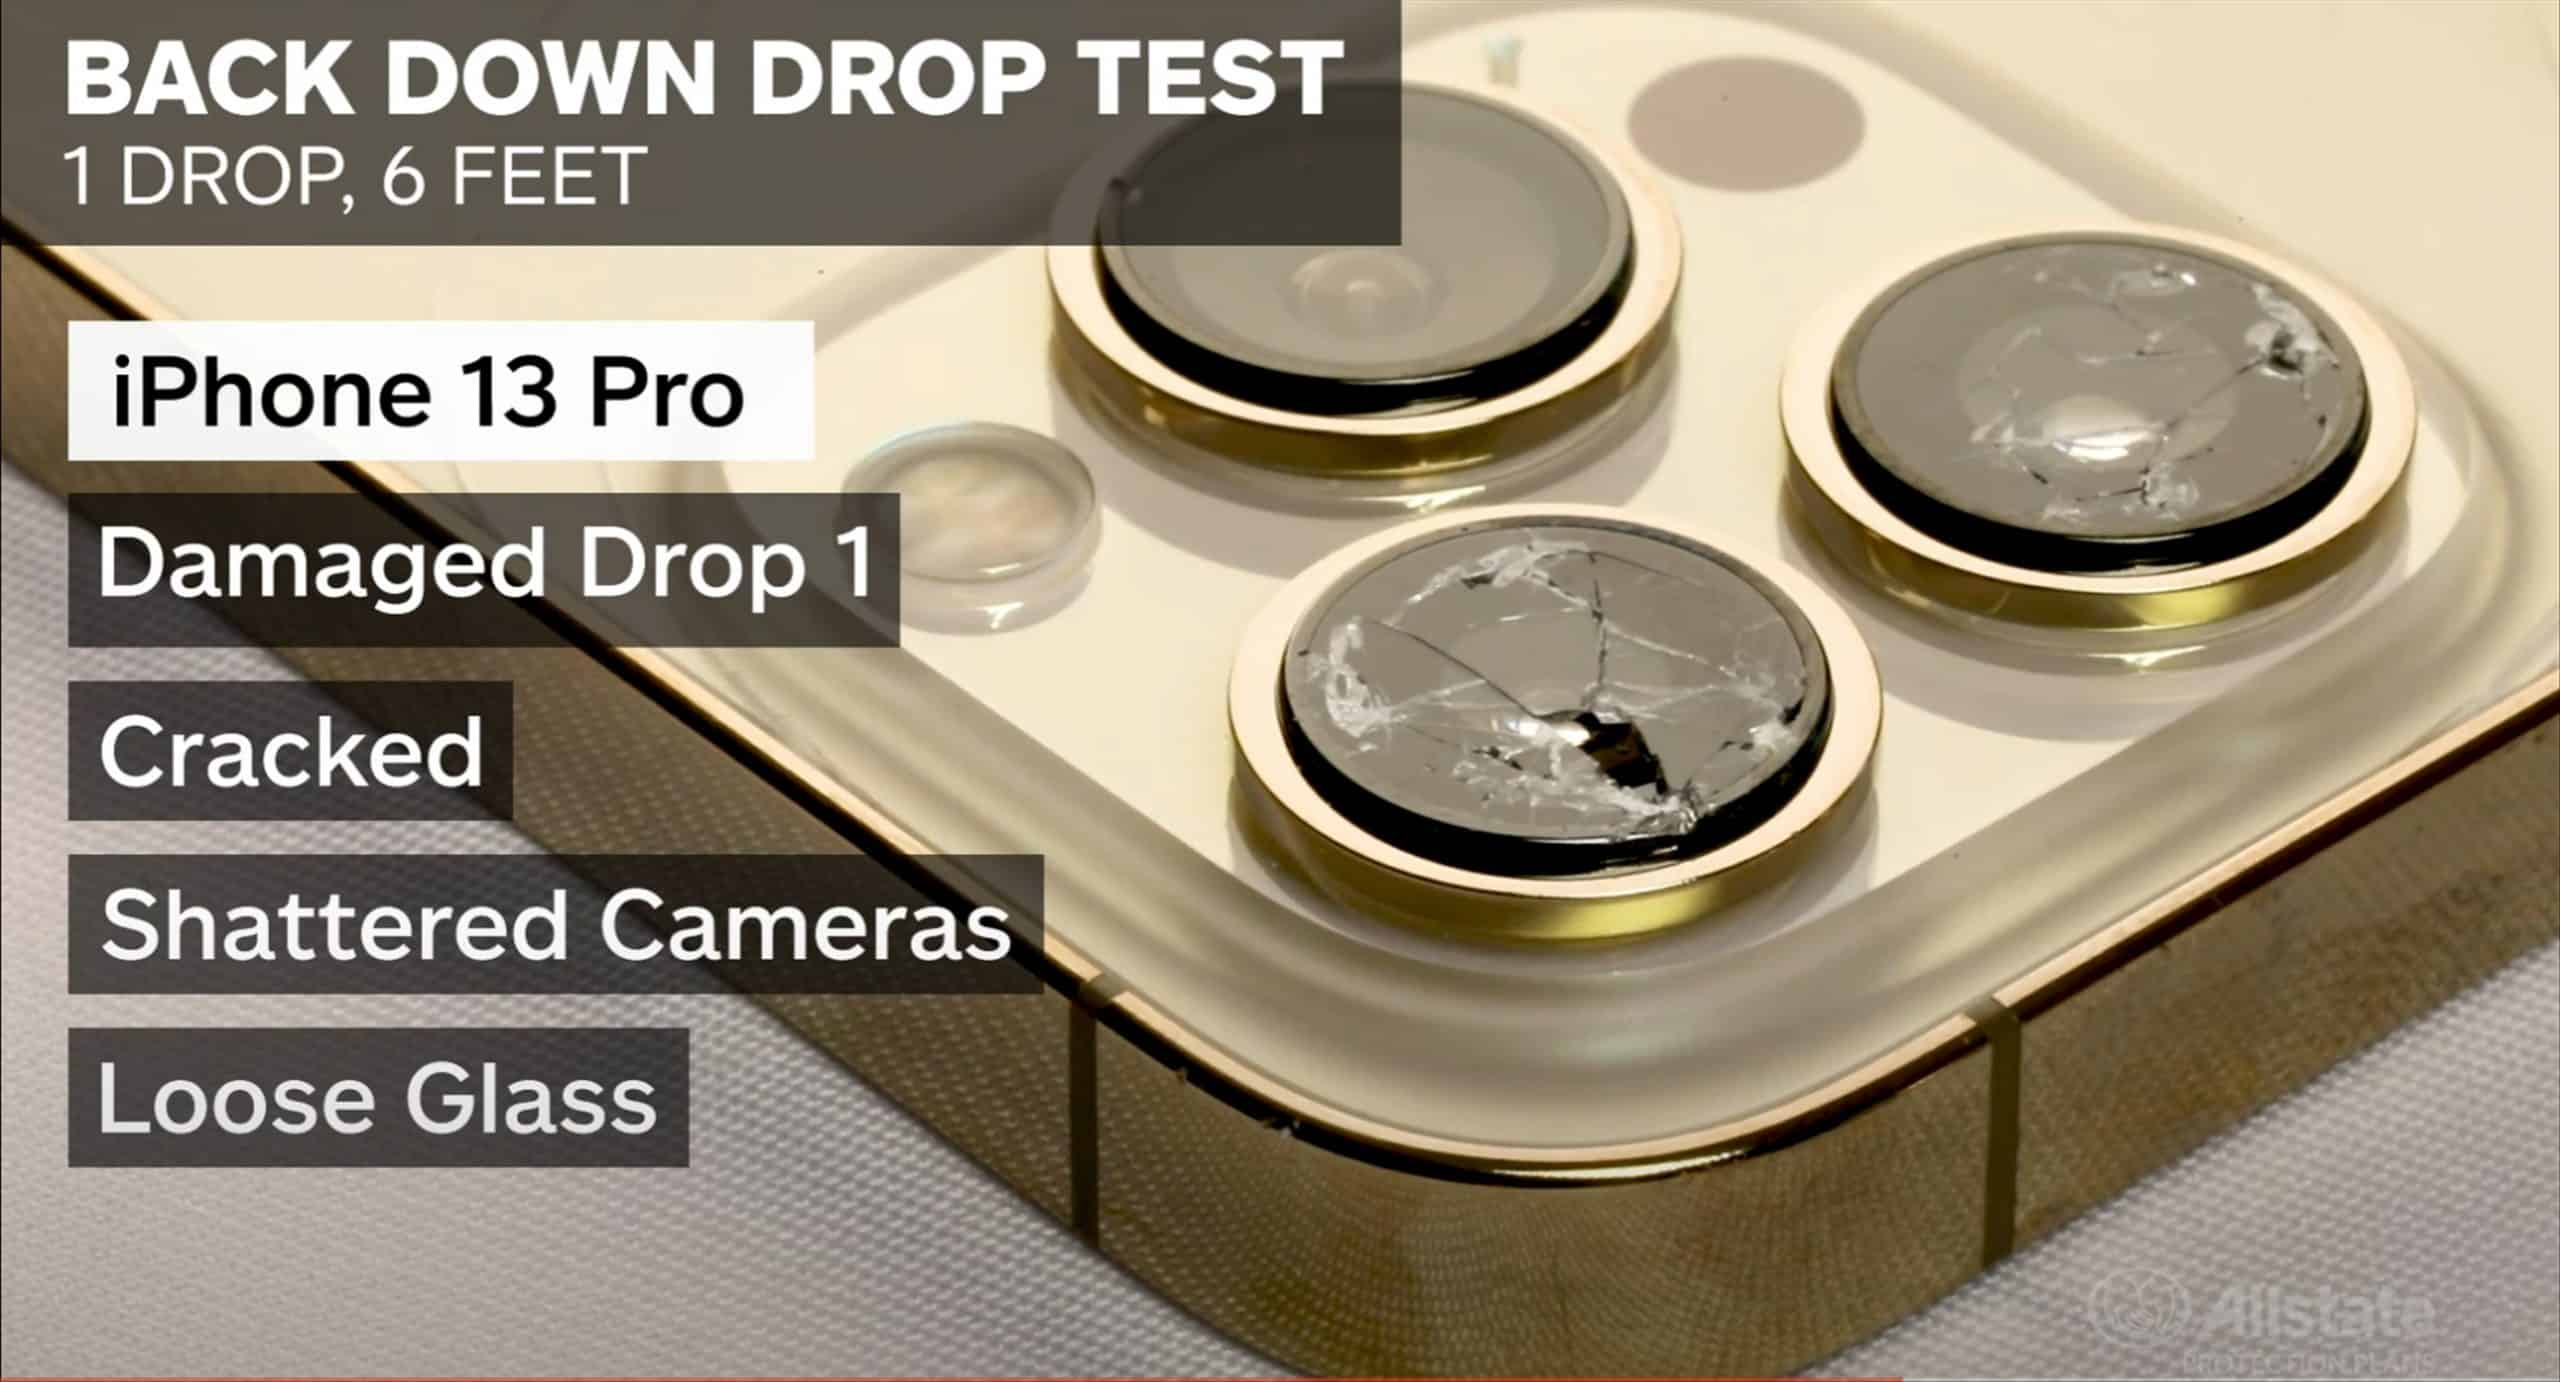 How tough is the new iPhone 13? Here are some iPhone 13 drop test results!